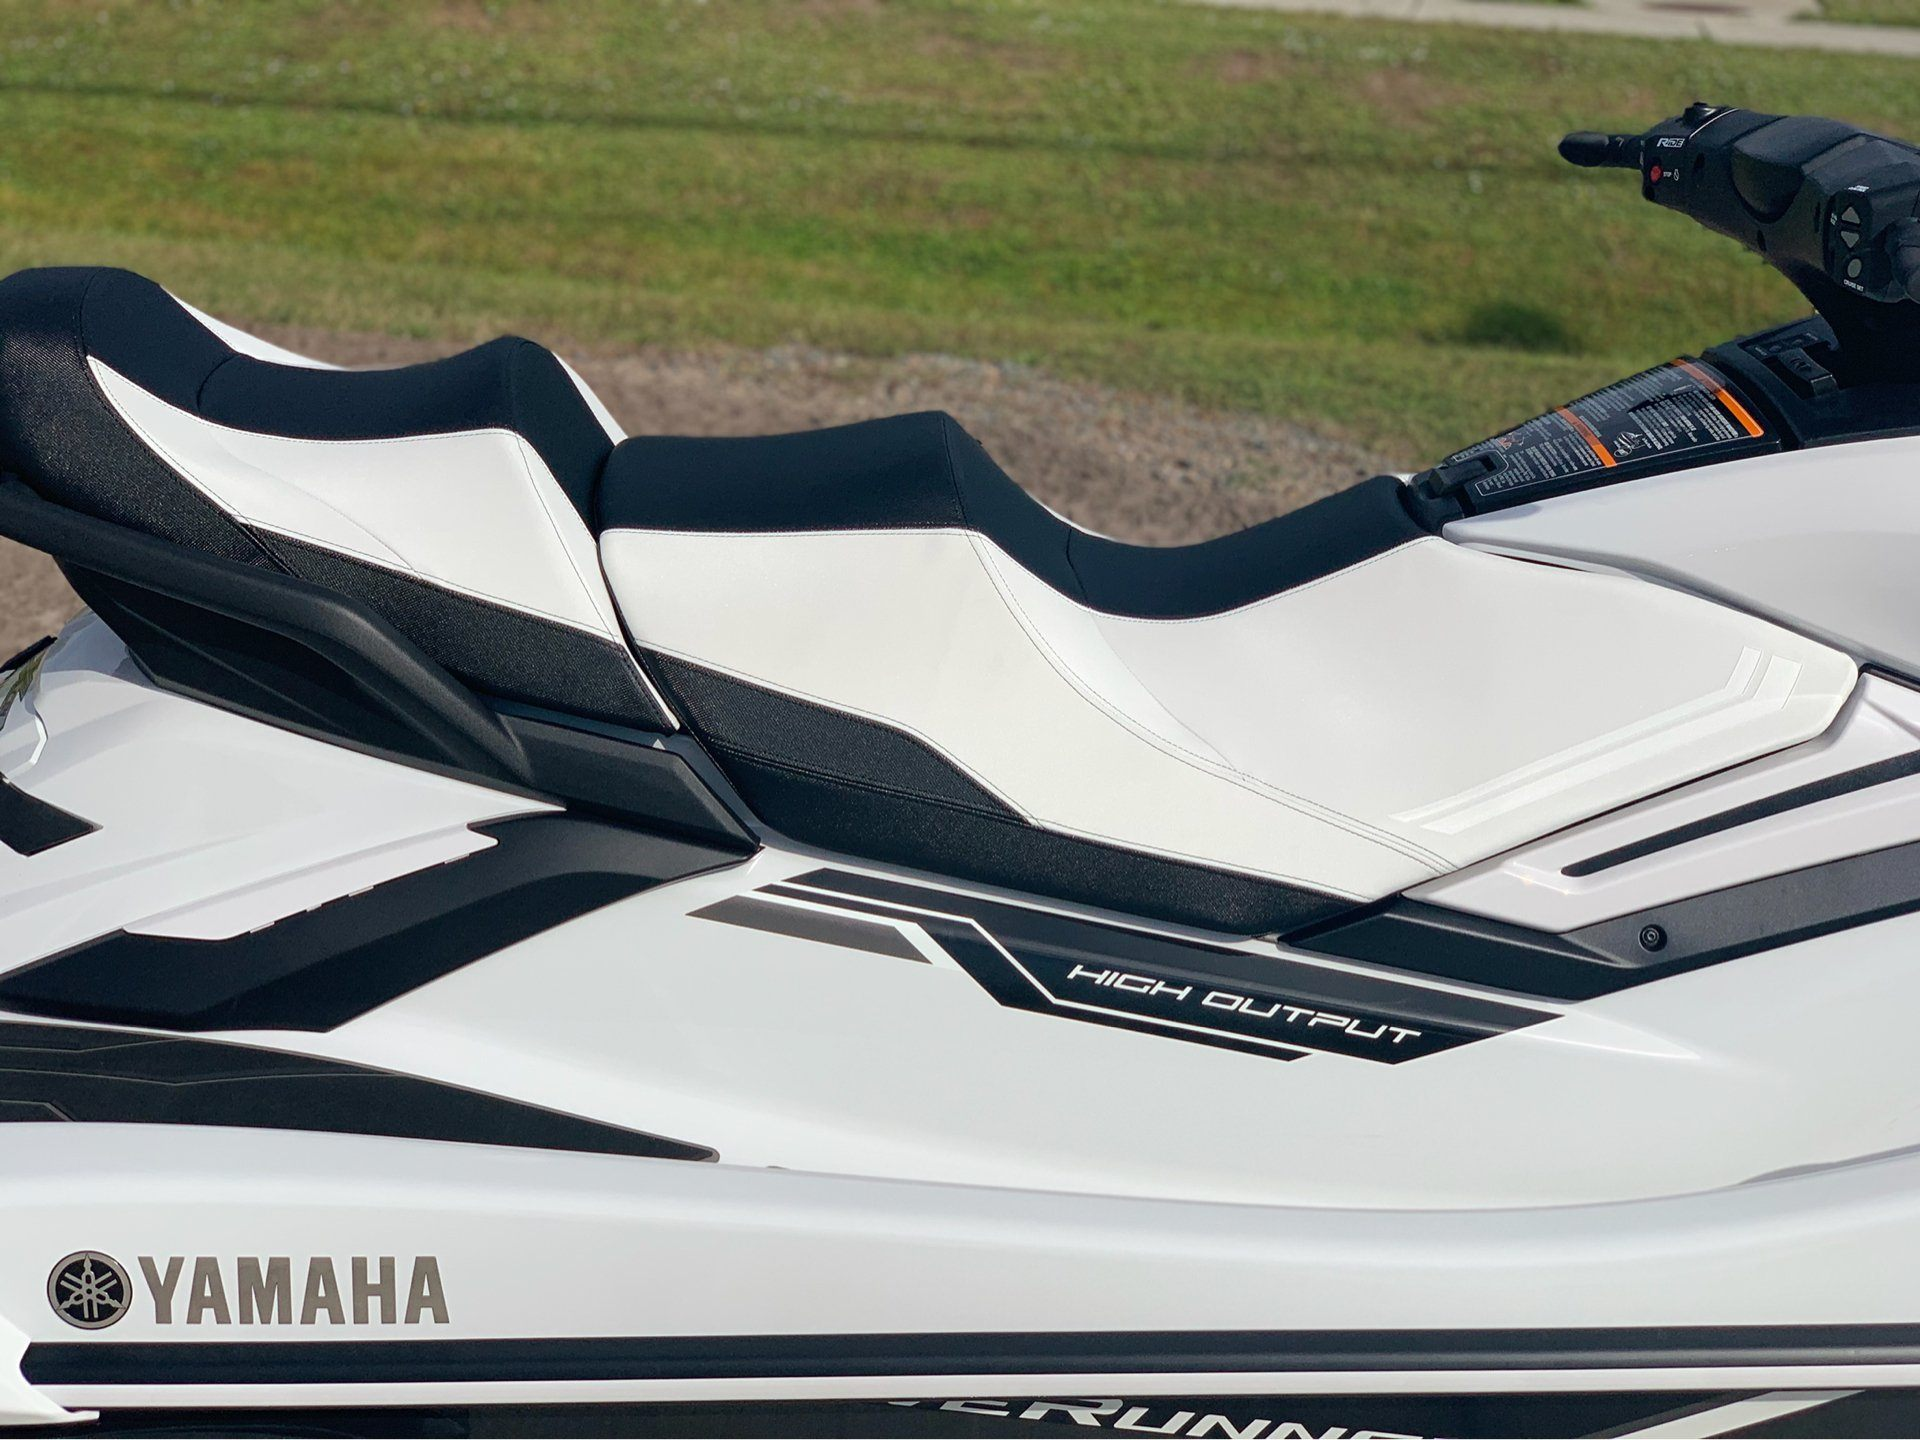 2019 Yamaha FX Cruiser HO in Orlando, Florida - Photo 5